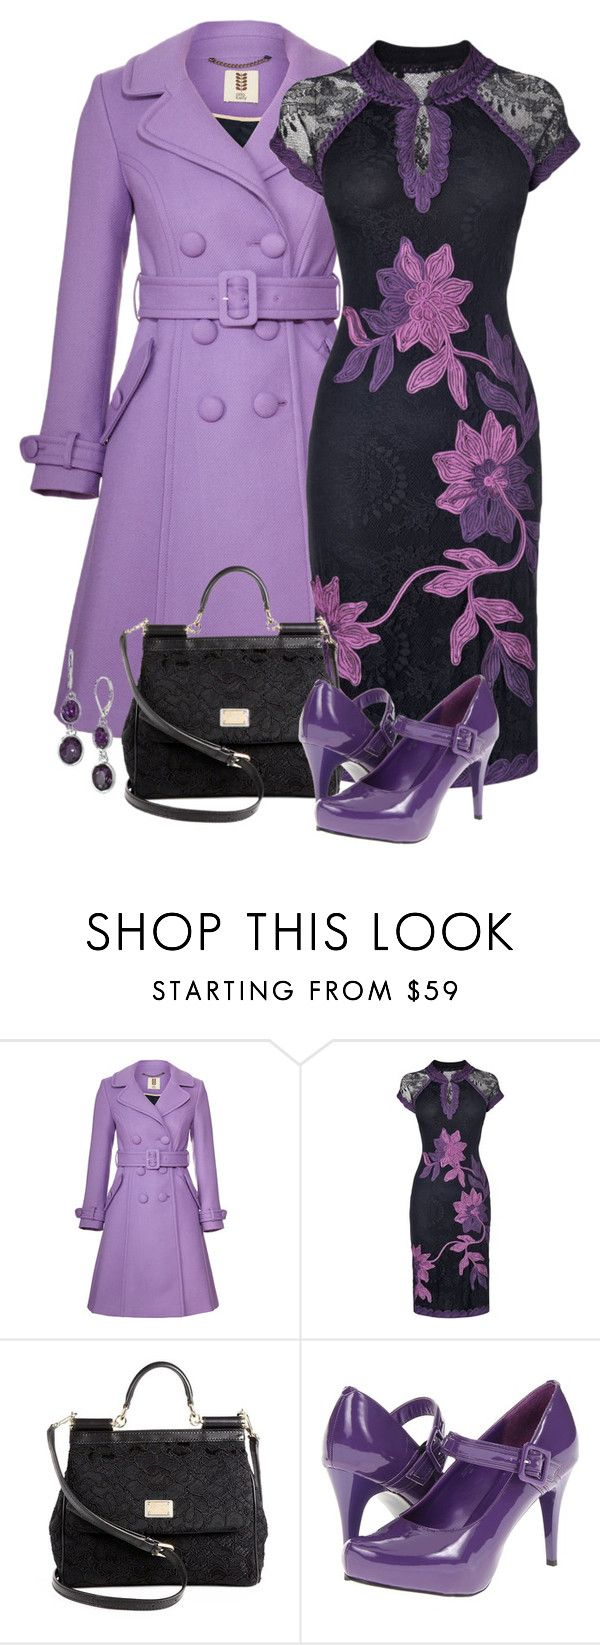 """""""Phase eight - black/purple"""" by mommygerloff ❤ liked on Polyvore featuring Orla Kiely, Phase Eight, Dolce&Gabbana, Gabriella Rocha and Lonna & Lilly"""